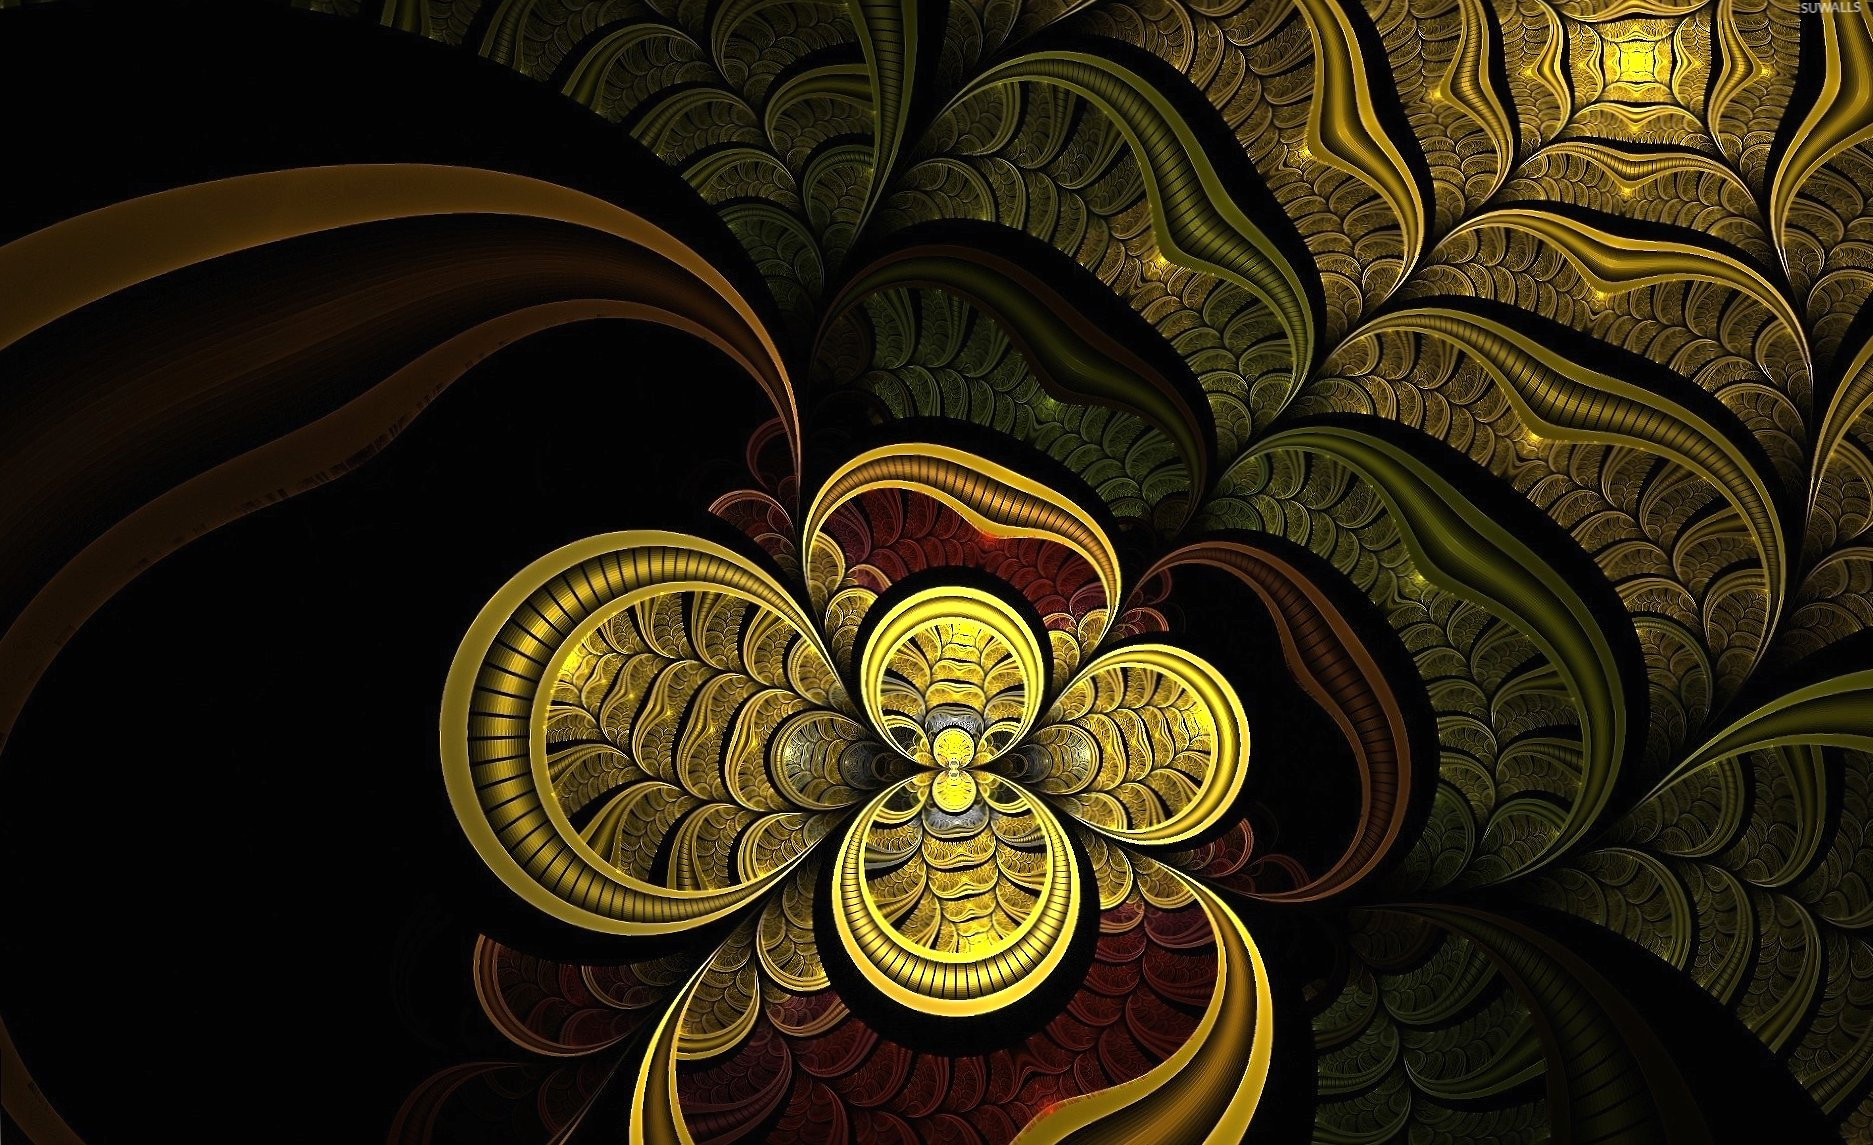 Golden flower glowing inside the swirl wallpapers HD quality